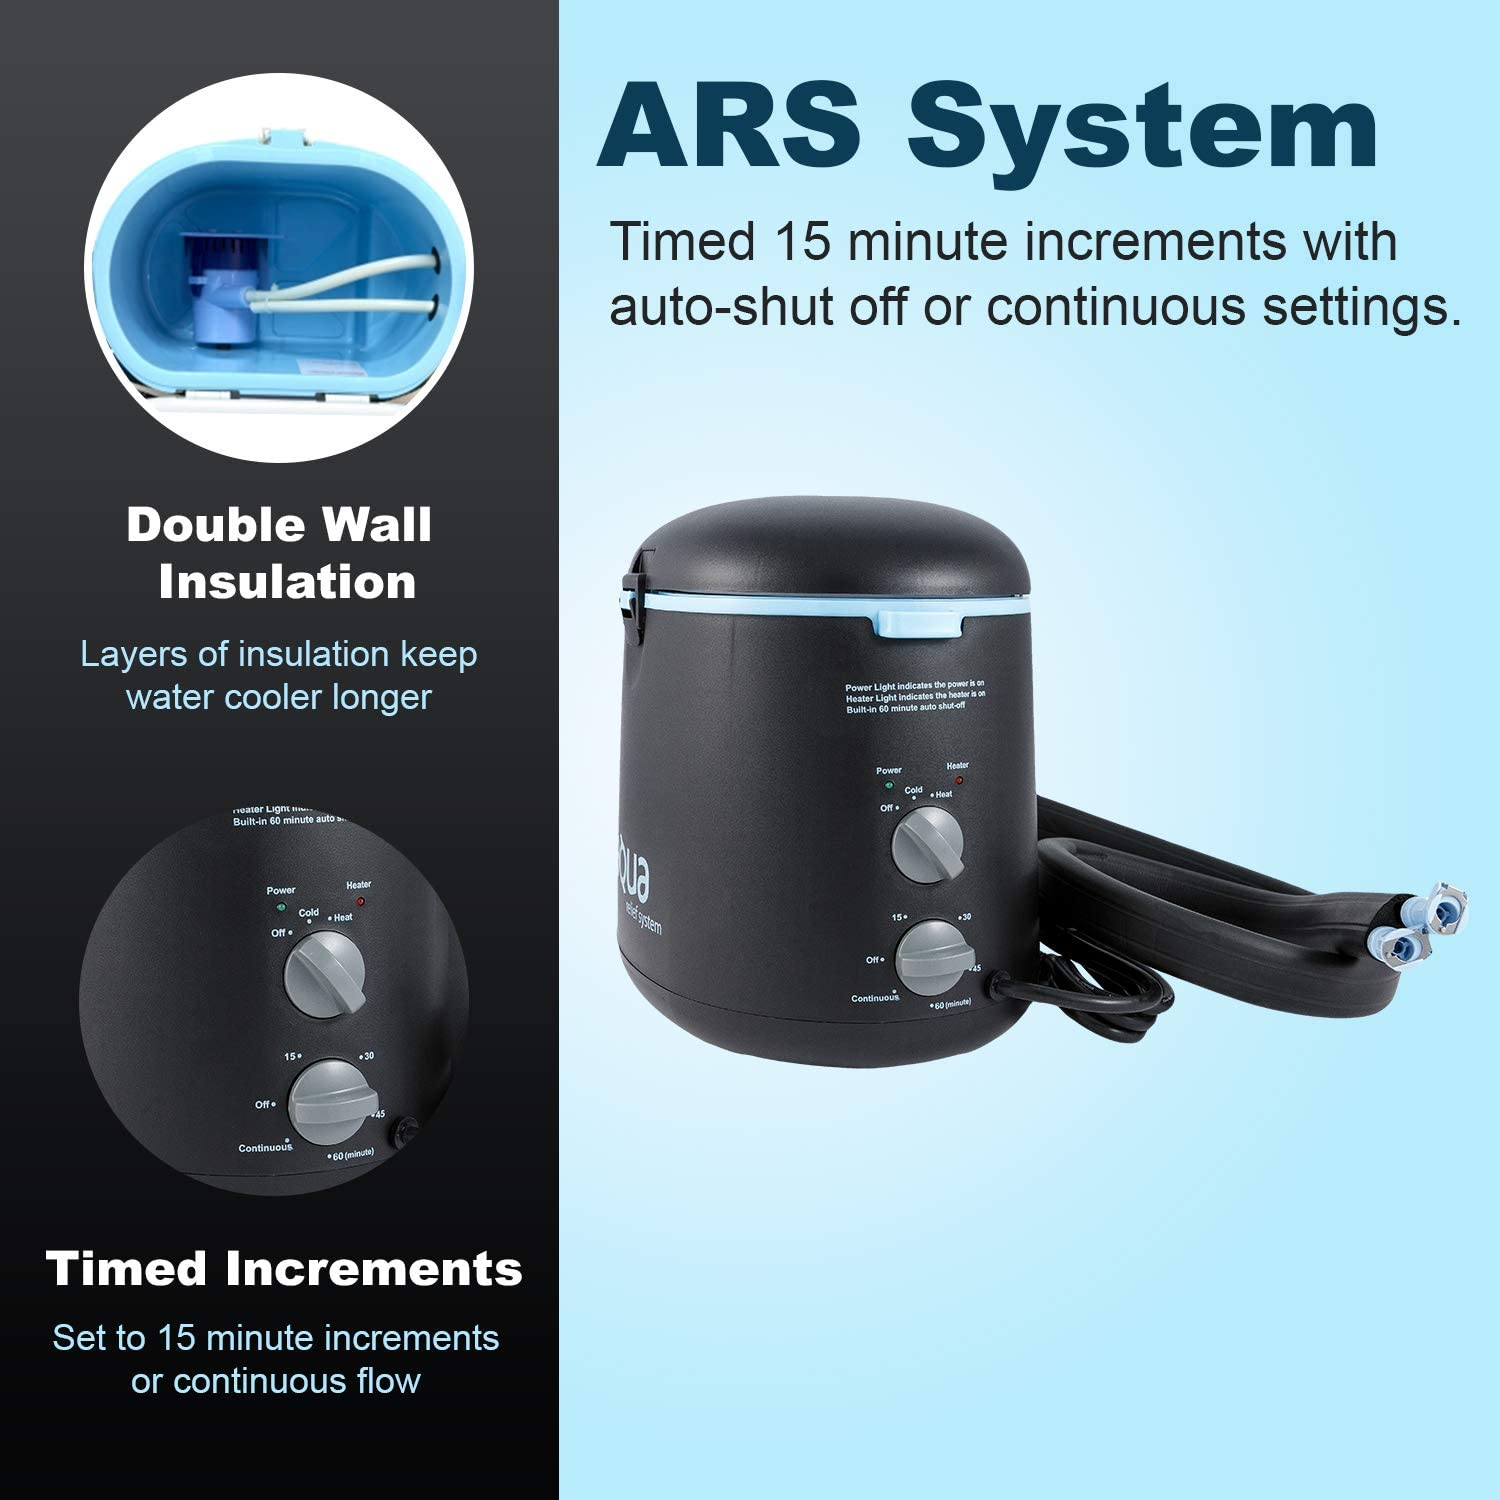 The Aqua Relief System knee pad only